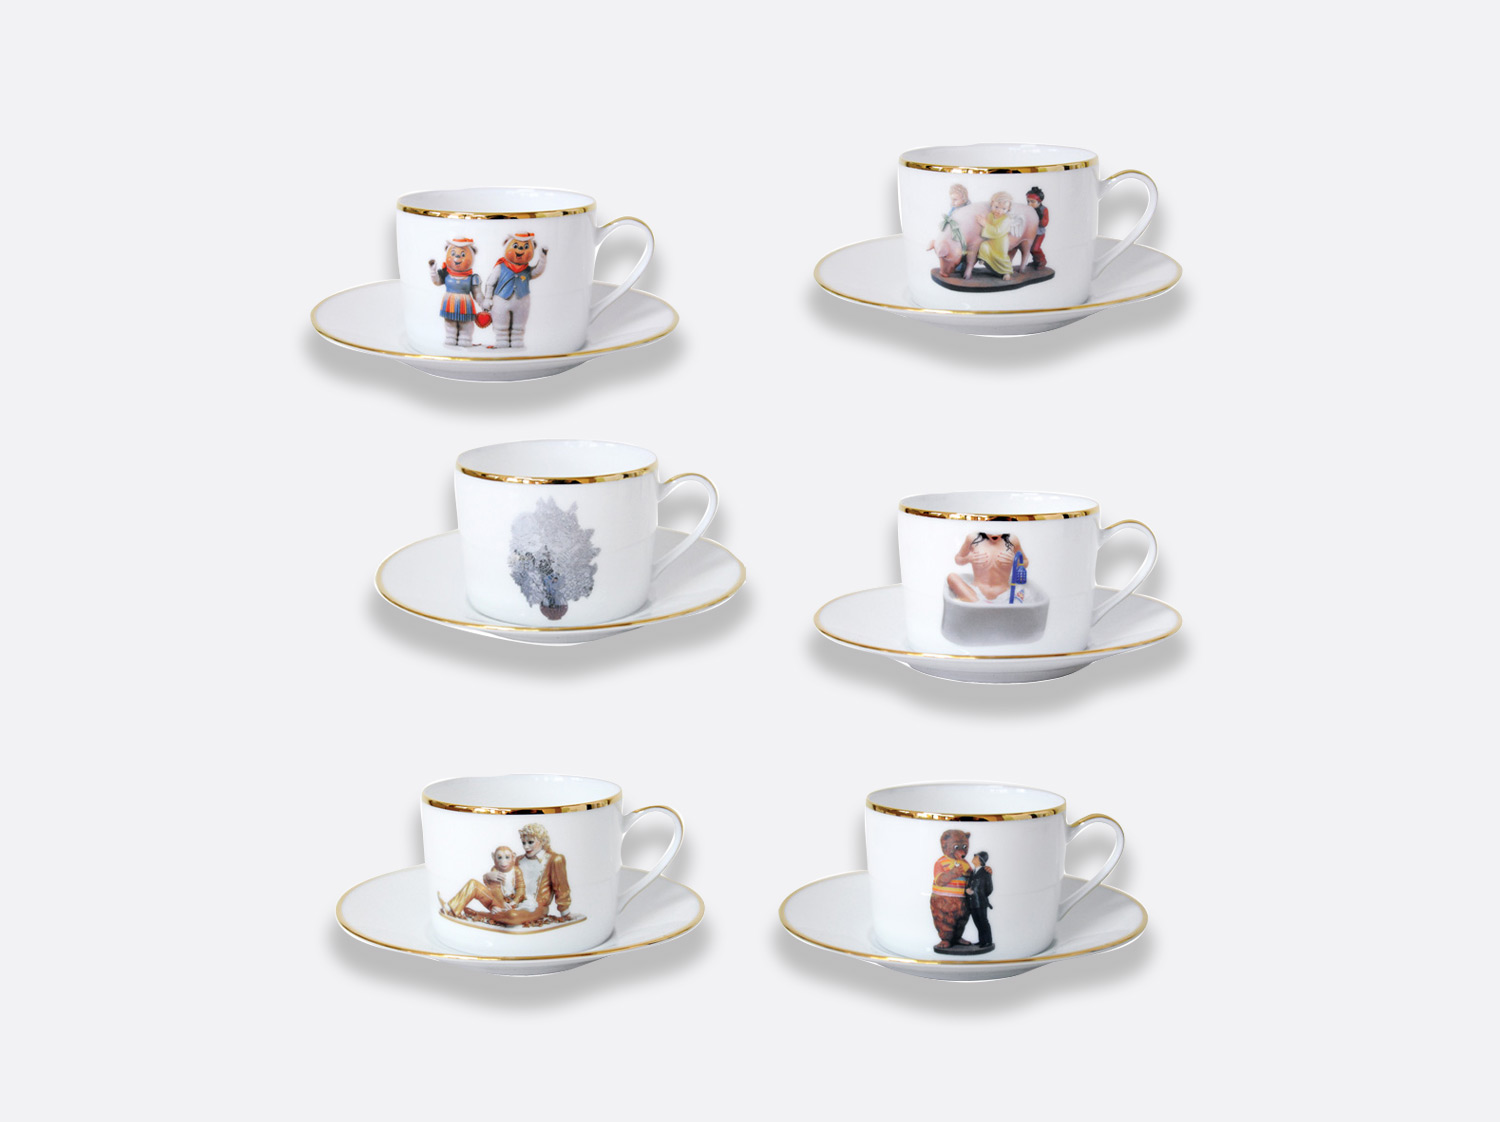 Coffret de 6 tasses et soucoupes à thé assorties en porcelaine de la collection Banality series Bernardaud